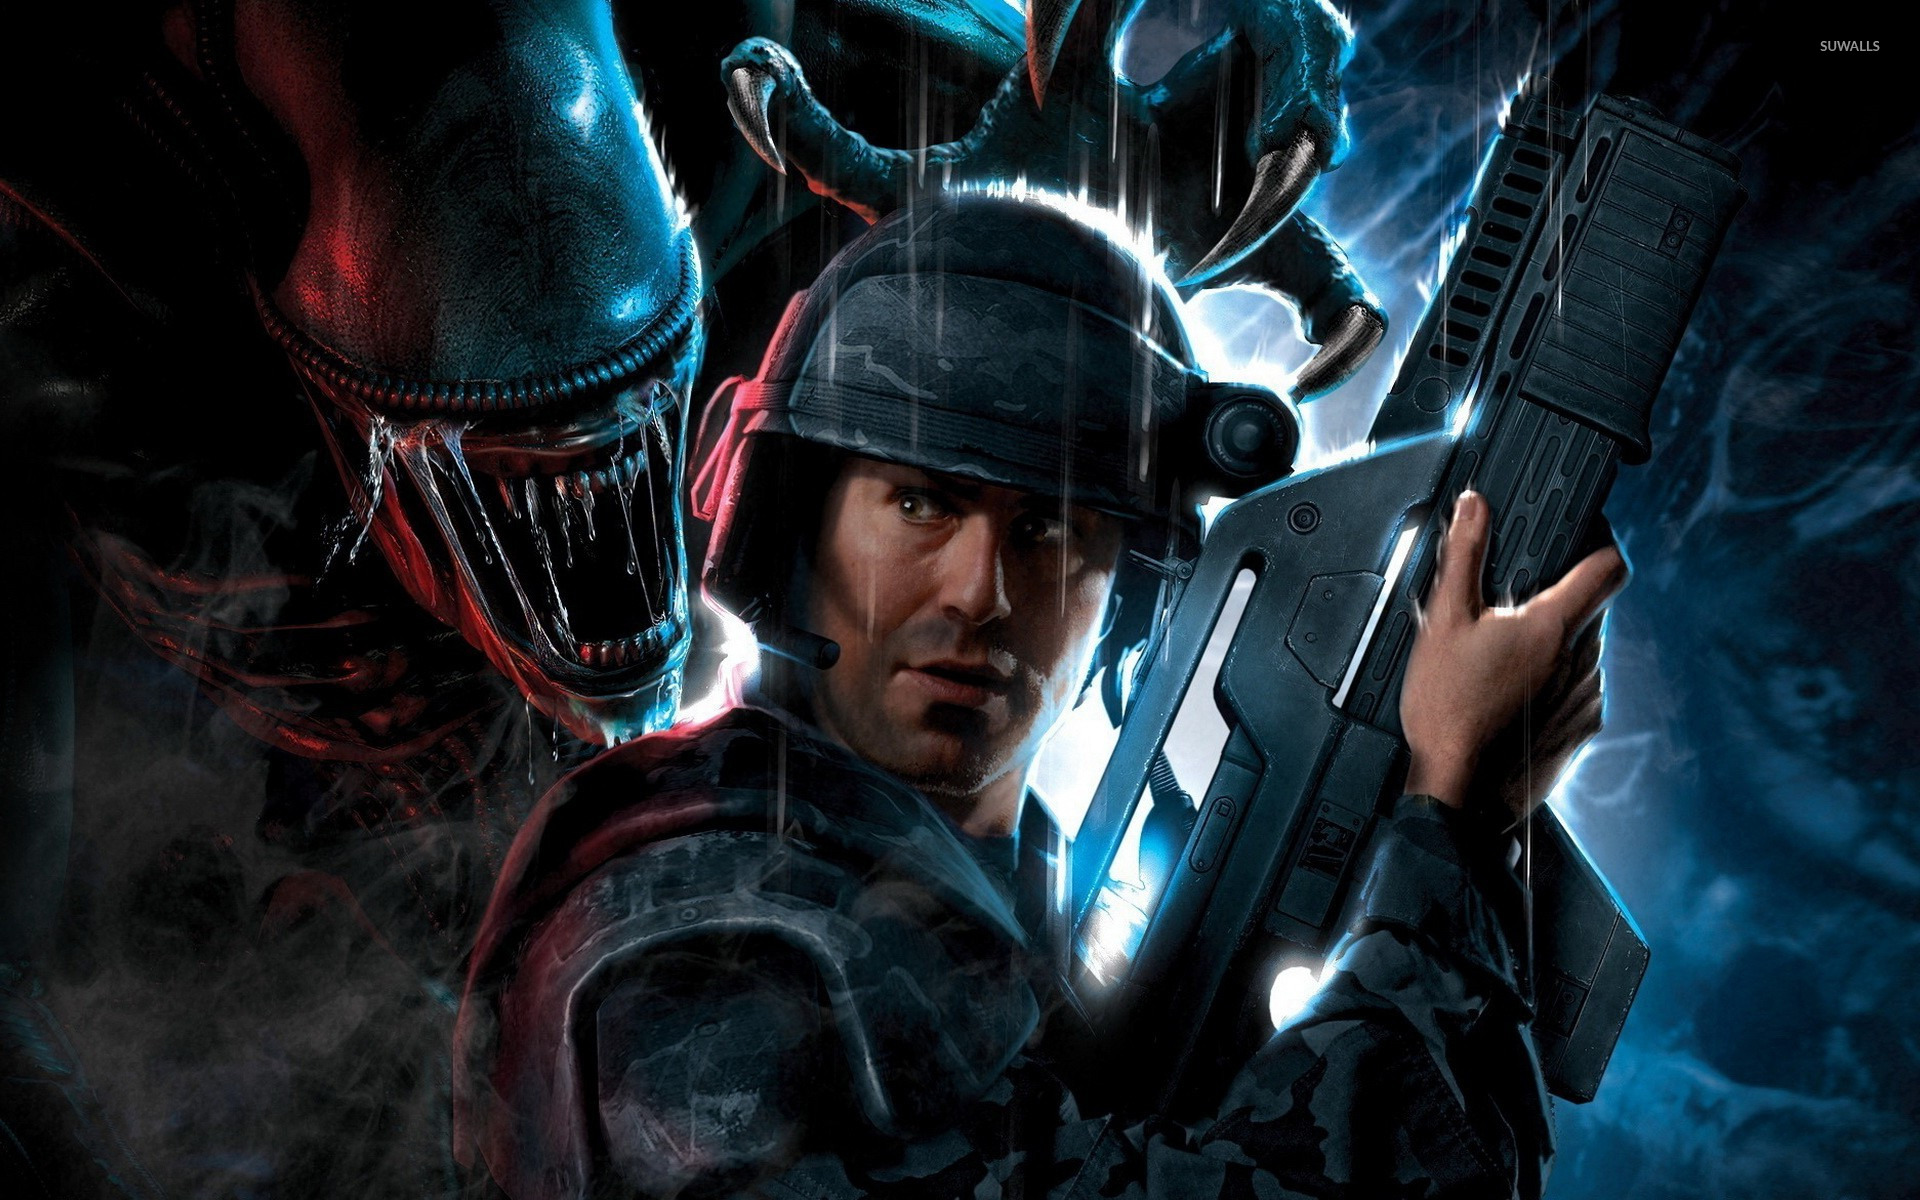 aliens colonial marines 2 wallpaper game wallpapers